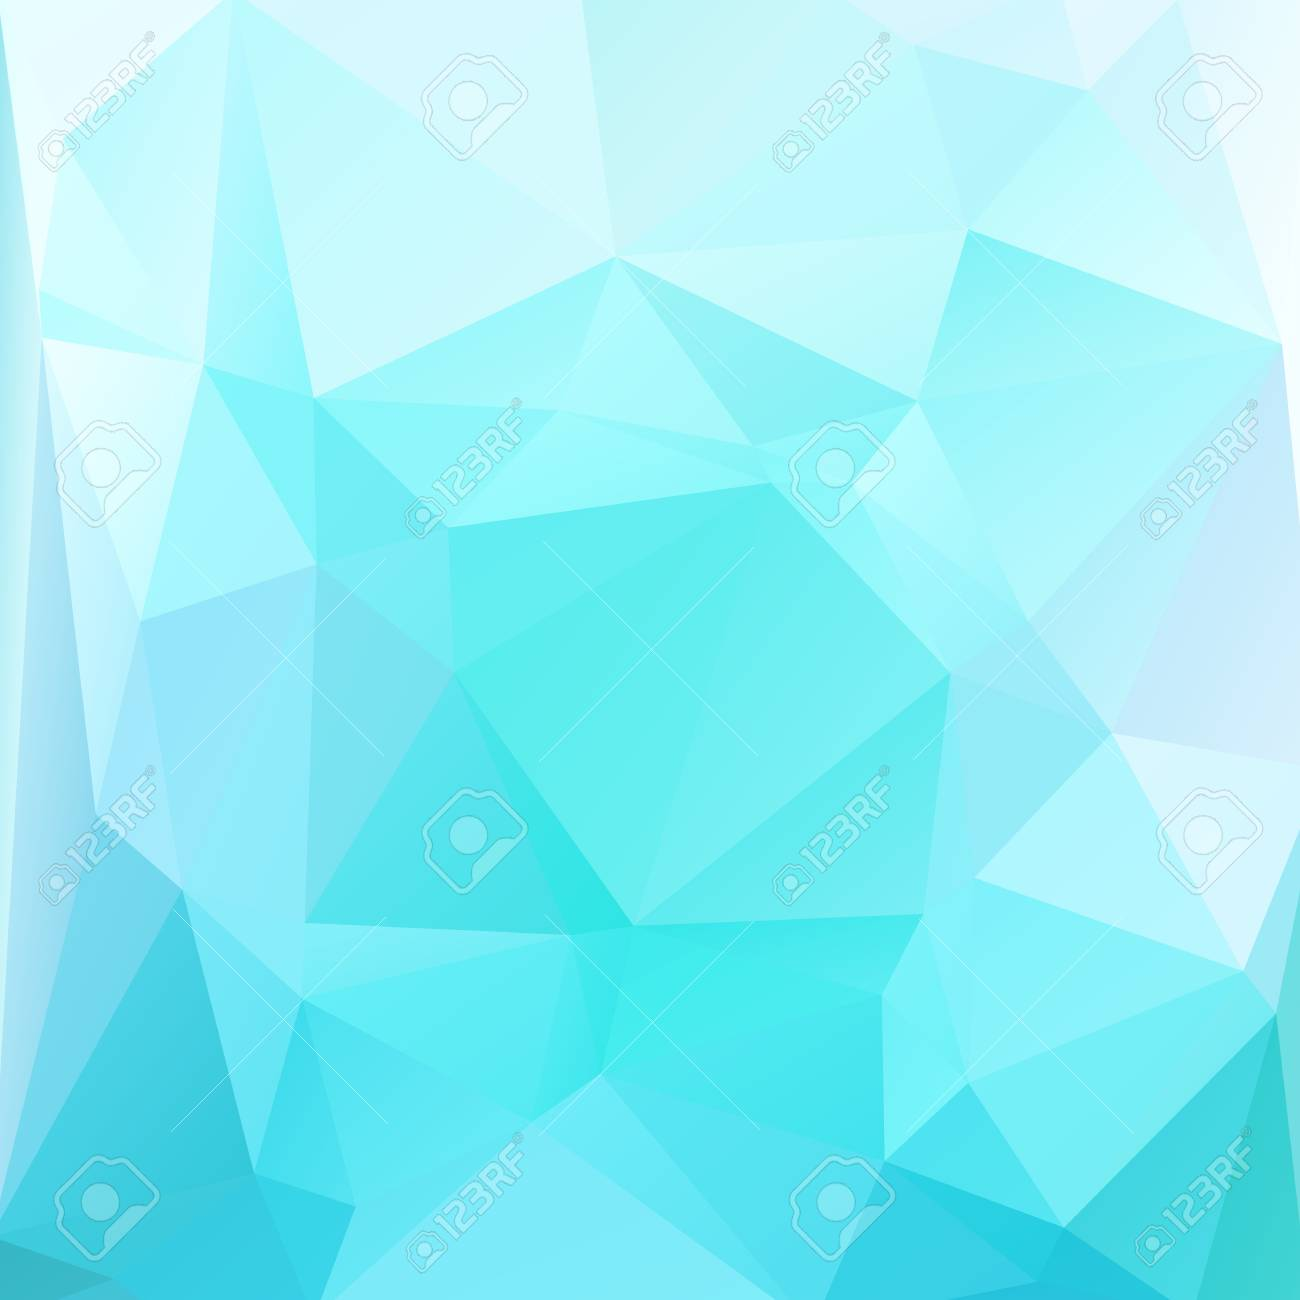 Polygonal Abstract Background With Light Blue Triangles